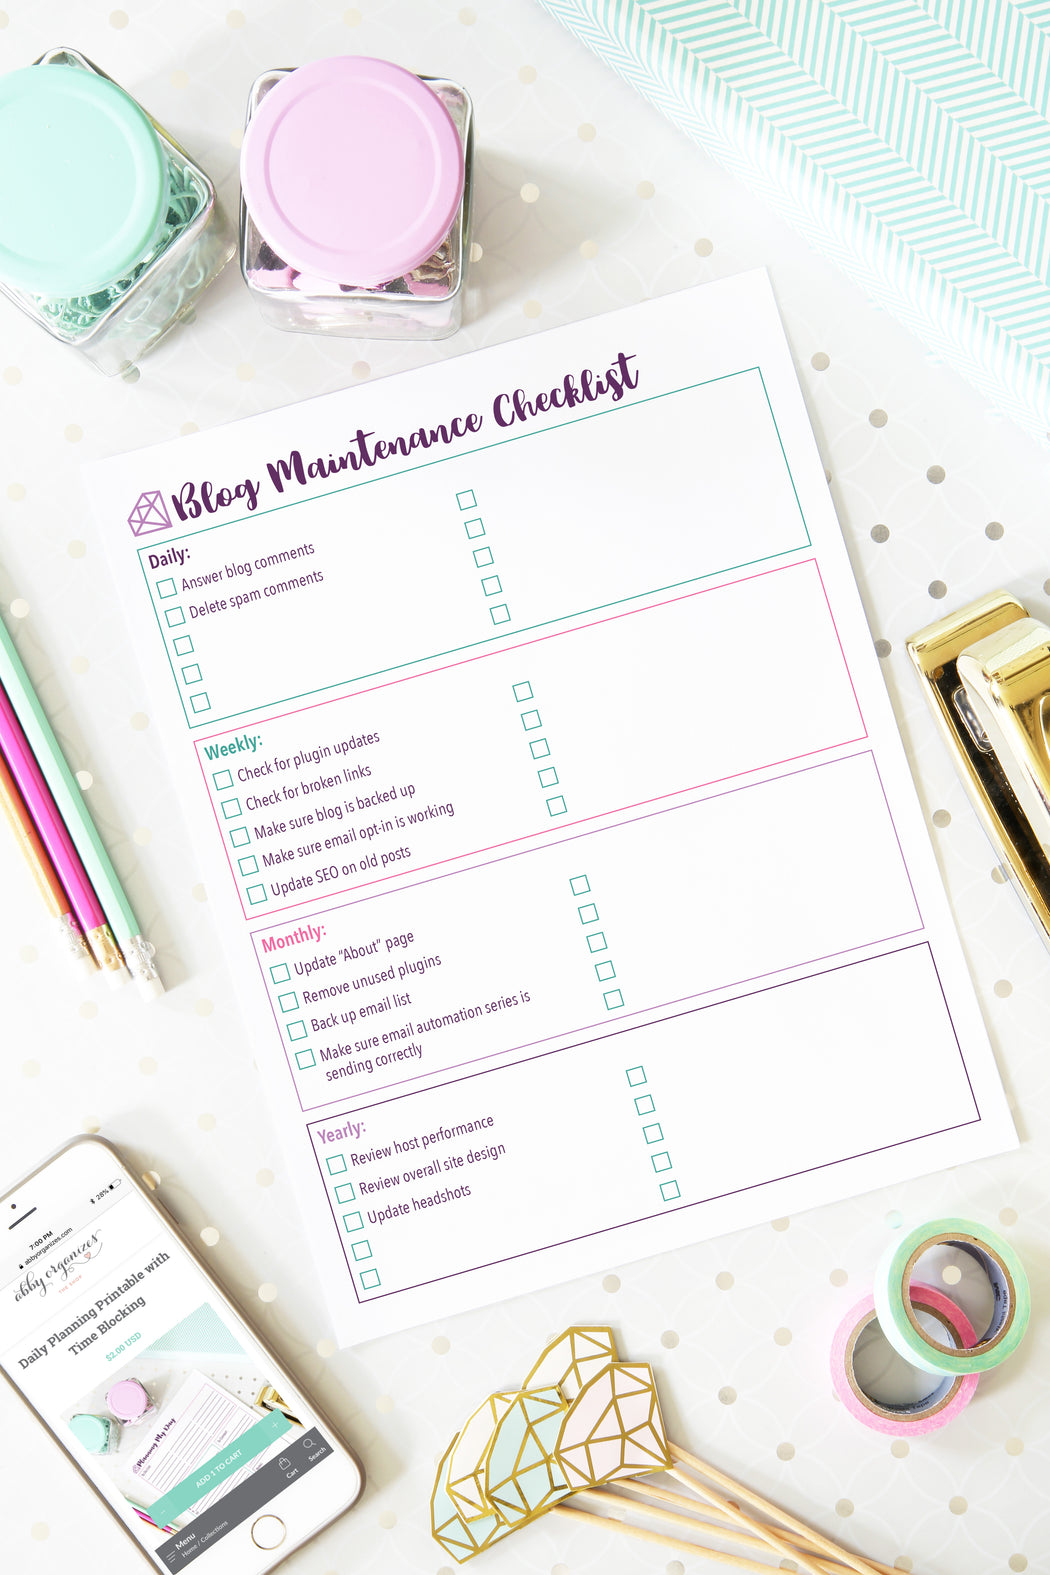 Blog Maintenance Checklist Printables, organizing printables, blogging binder, #printables #organizing